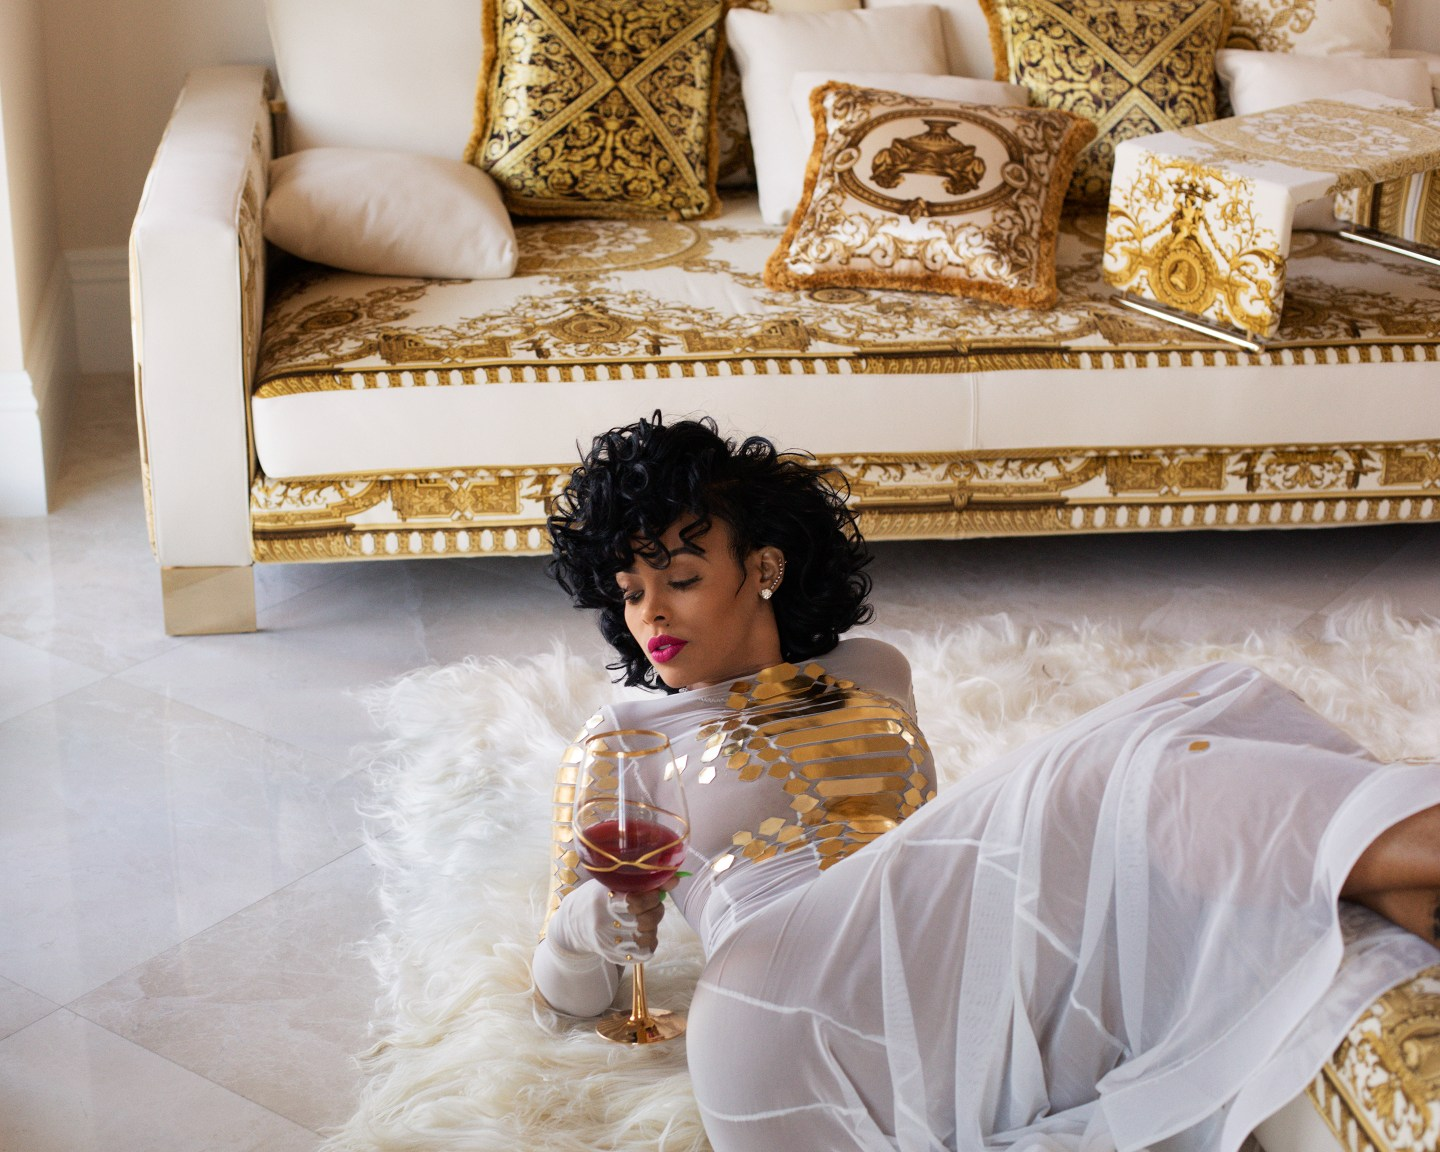 How Keyshia Ka'oir Met Gucci Mane, Stuck By His Side, And Became America's Sweetheart